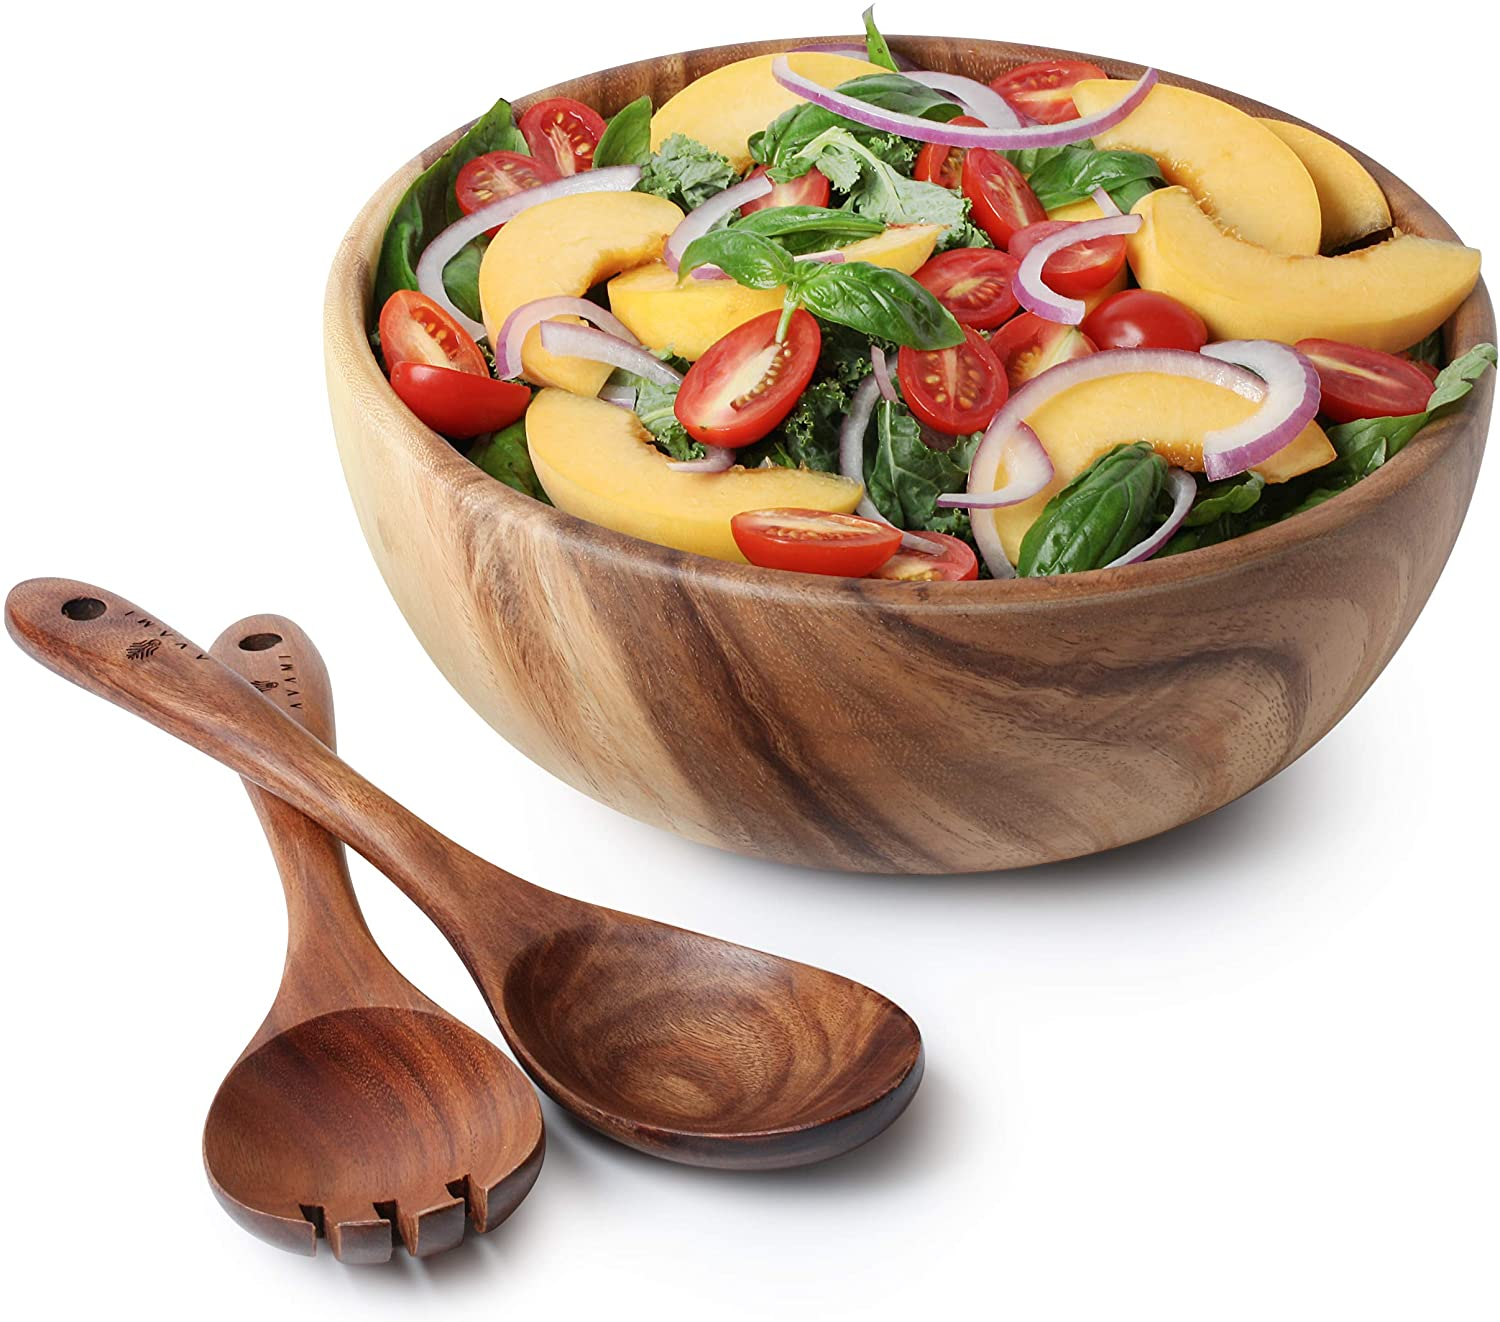 Acacia Wood Salad Bowl with Servers Set - Large 10inches Solid Hardwood Salad Wooden Bowl with Spoon for Fruits,Salads and Decoration by AVAMI